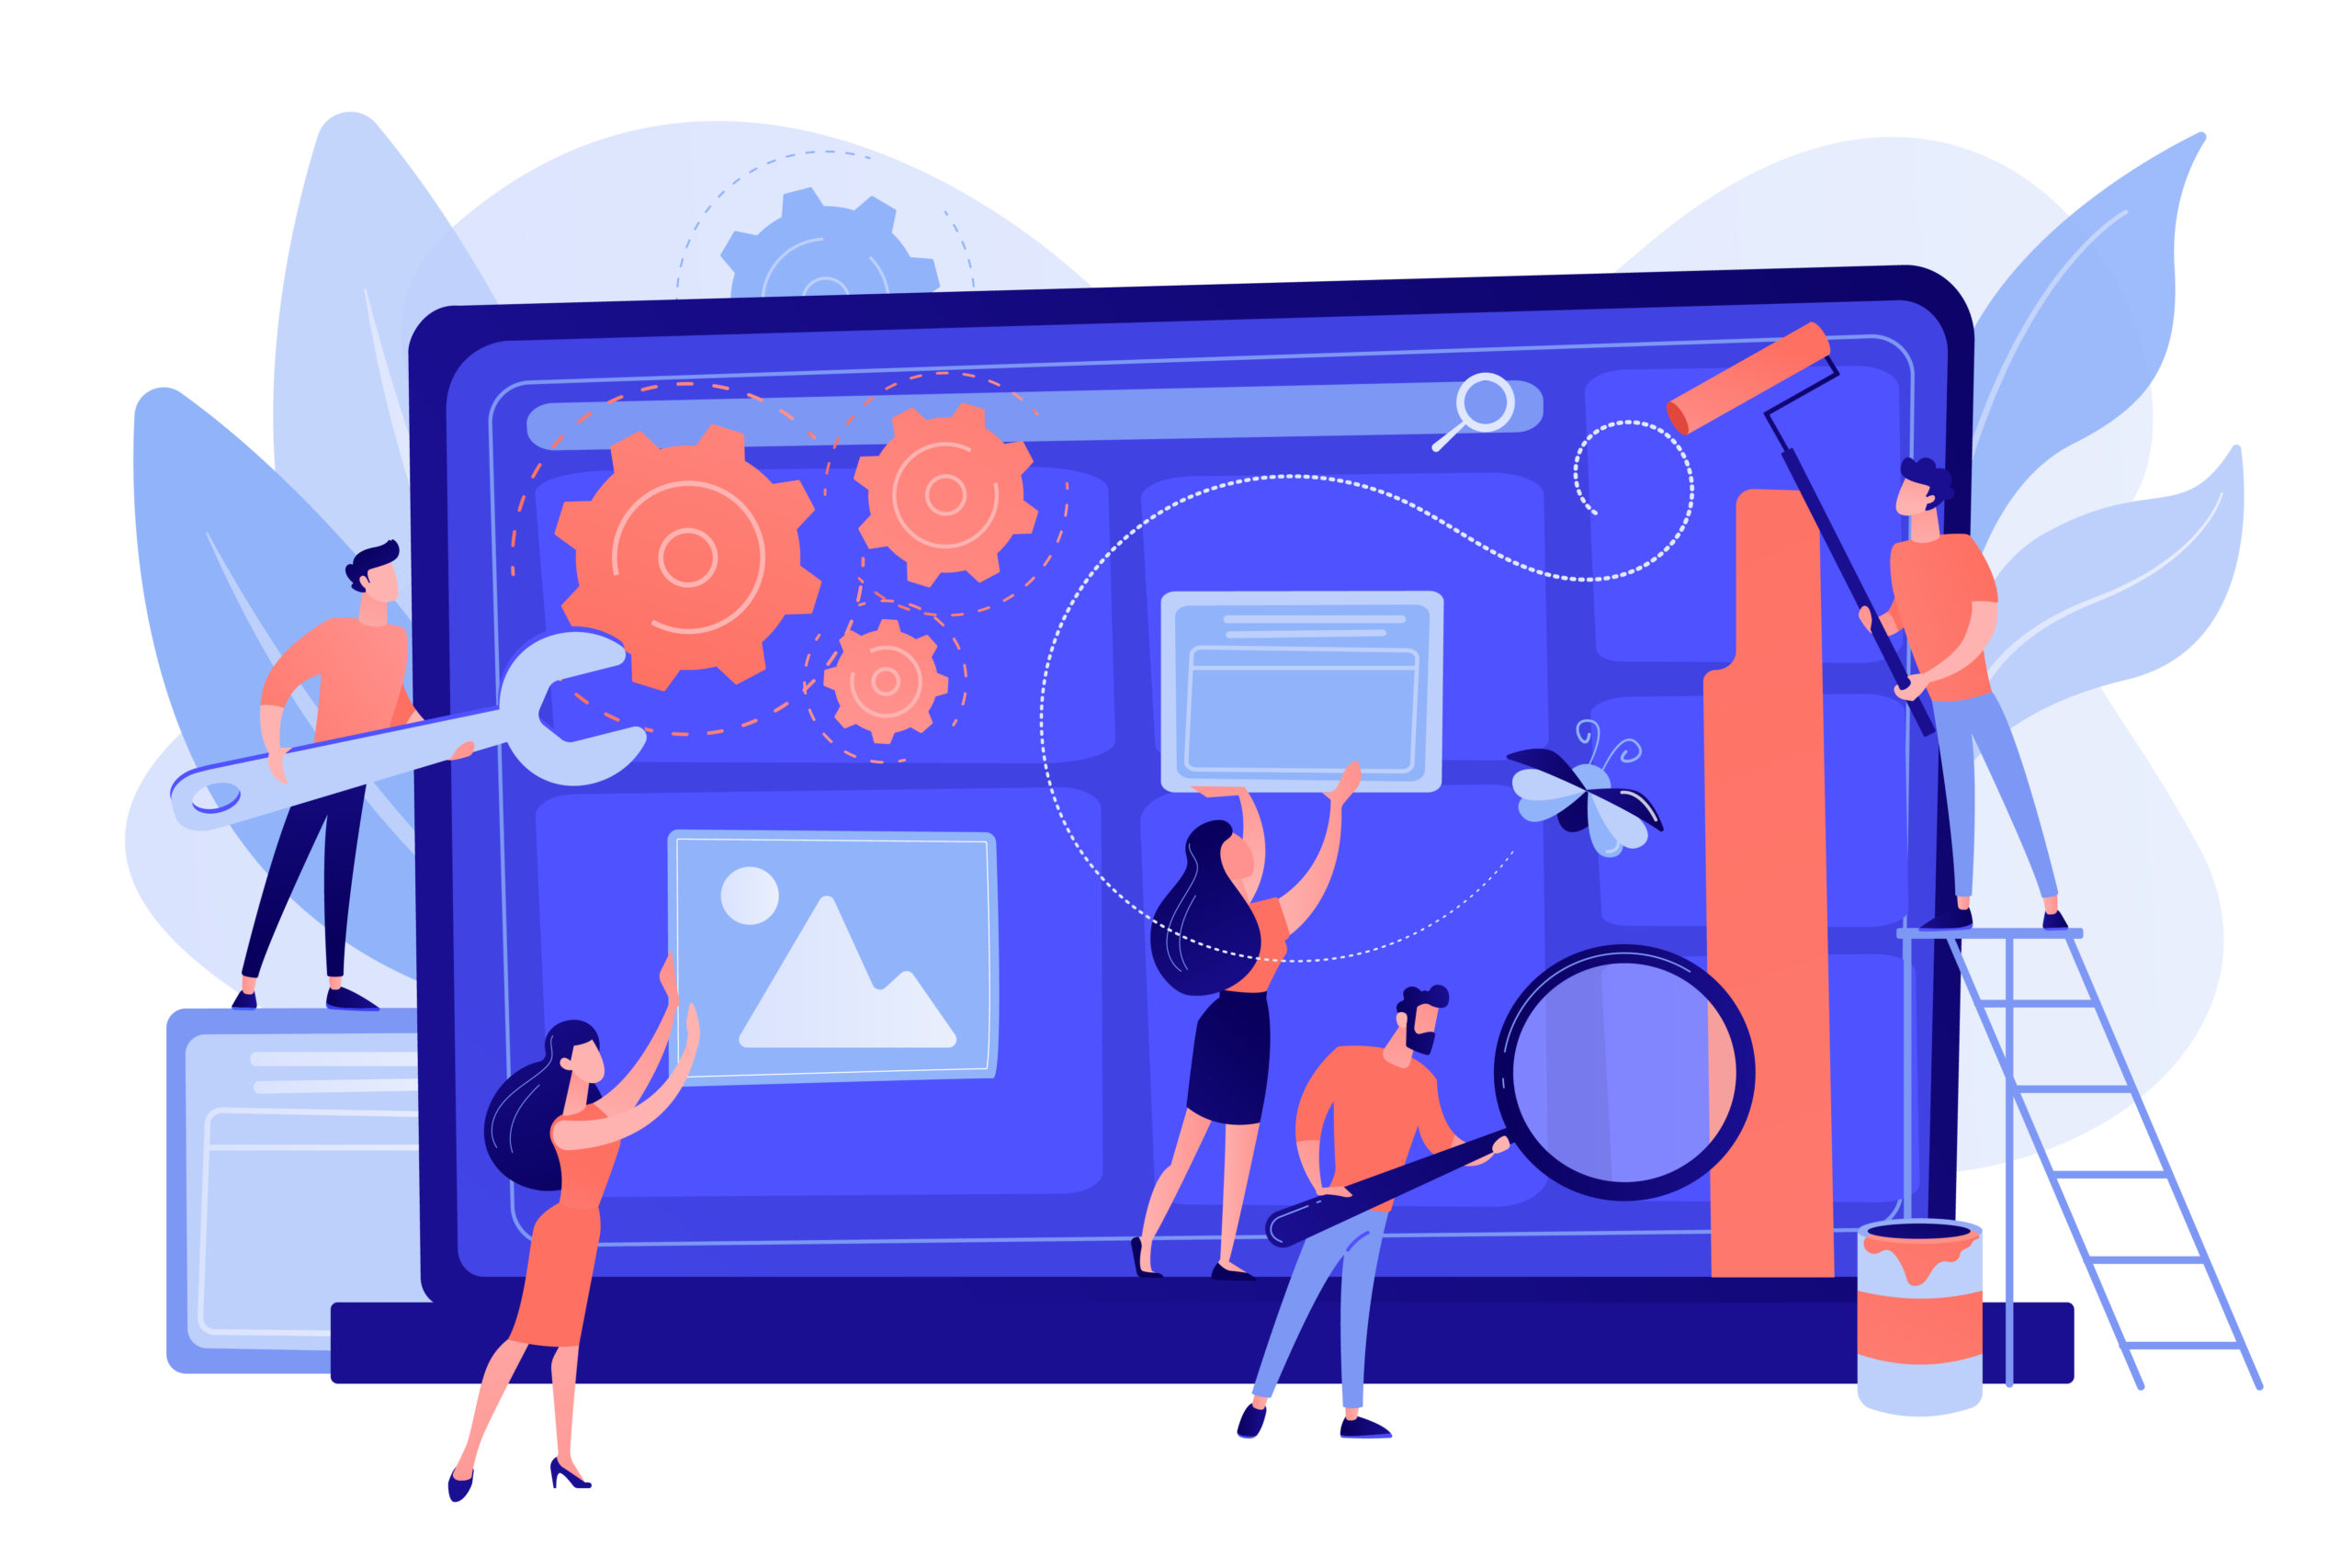 Technical support, programming and coding. Website maintenance, website maintenance services, update and keep your site easy concept. Pinkish coral bluevector isolated illustration